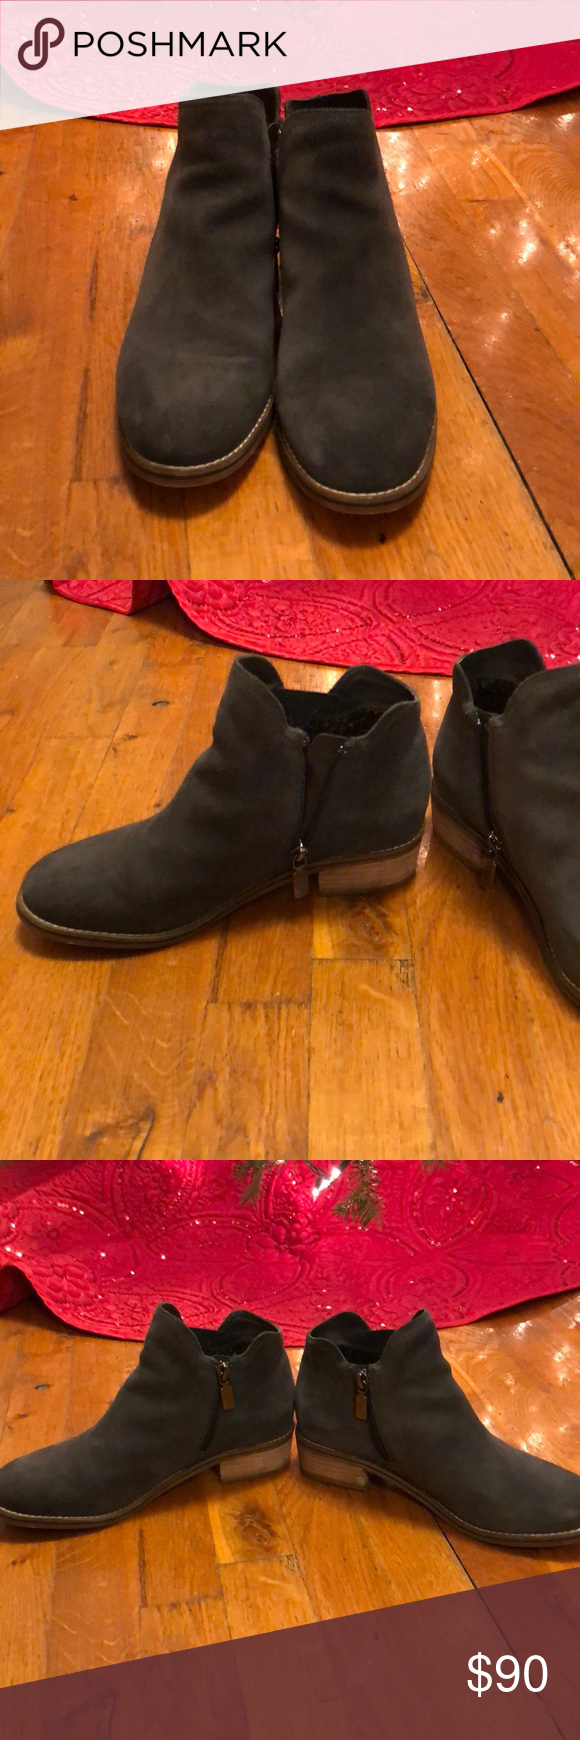 2deeb895d8a Blondo Lanka Waterproof Ankle Boot in Dark Grey Waterproof boot from Blondo  in Dark Grey Suede. Extremely warm and comfortable. Worn less than 5 times.